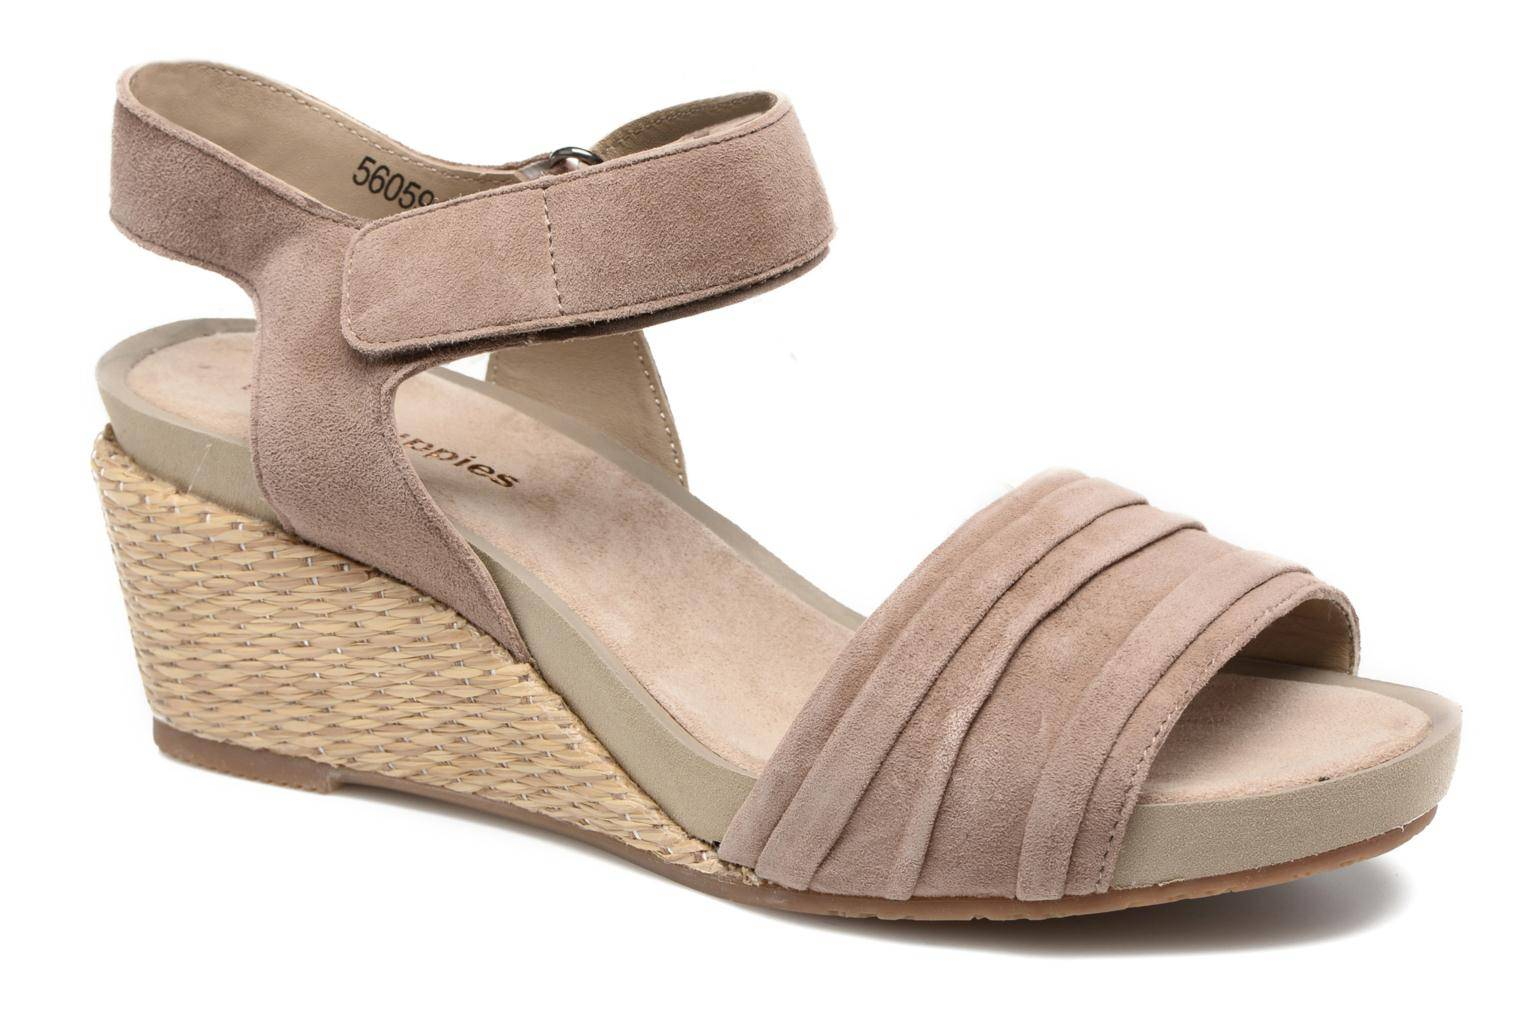 Hush Puppies - Eivee by  - Sandaalit Naisille  / Beige